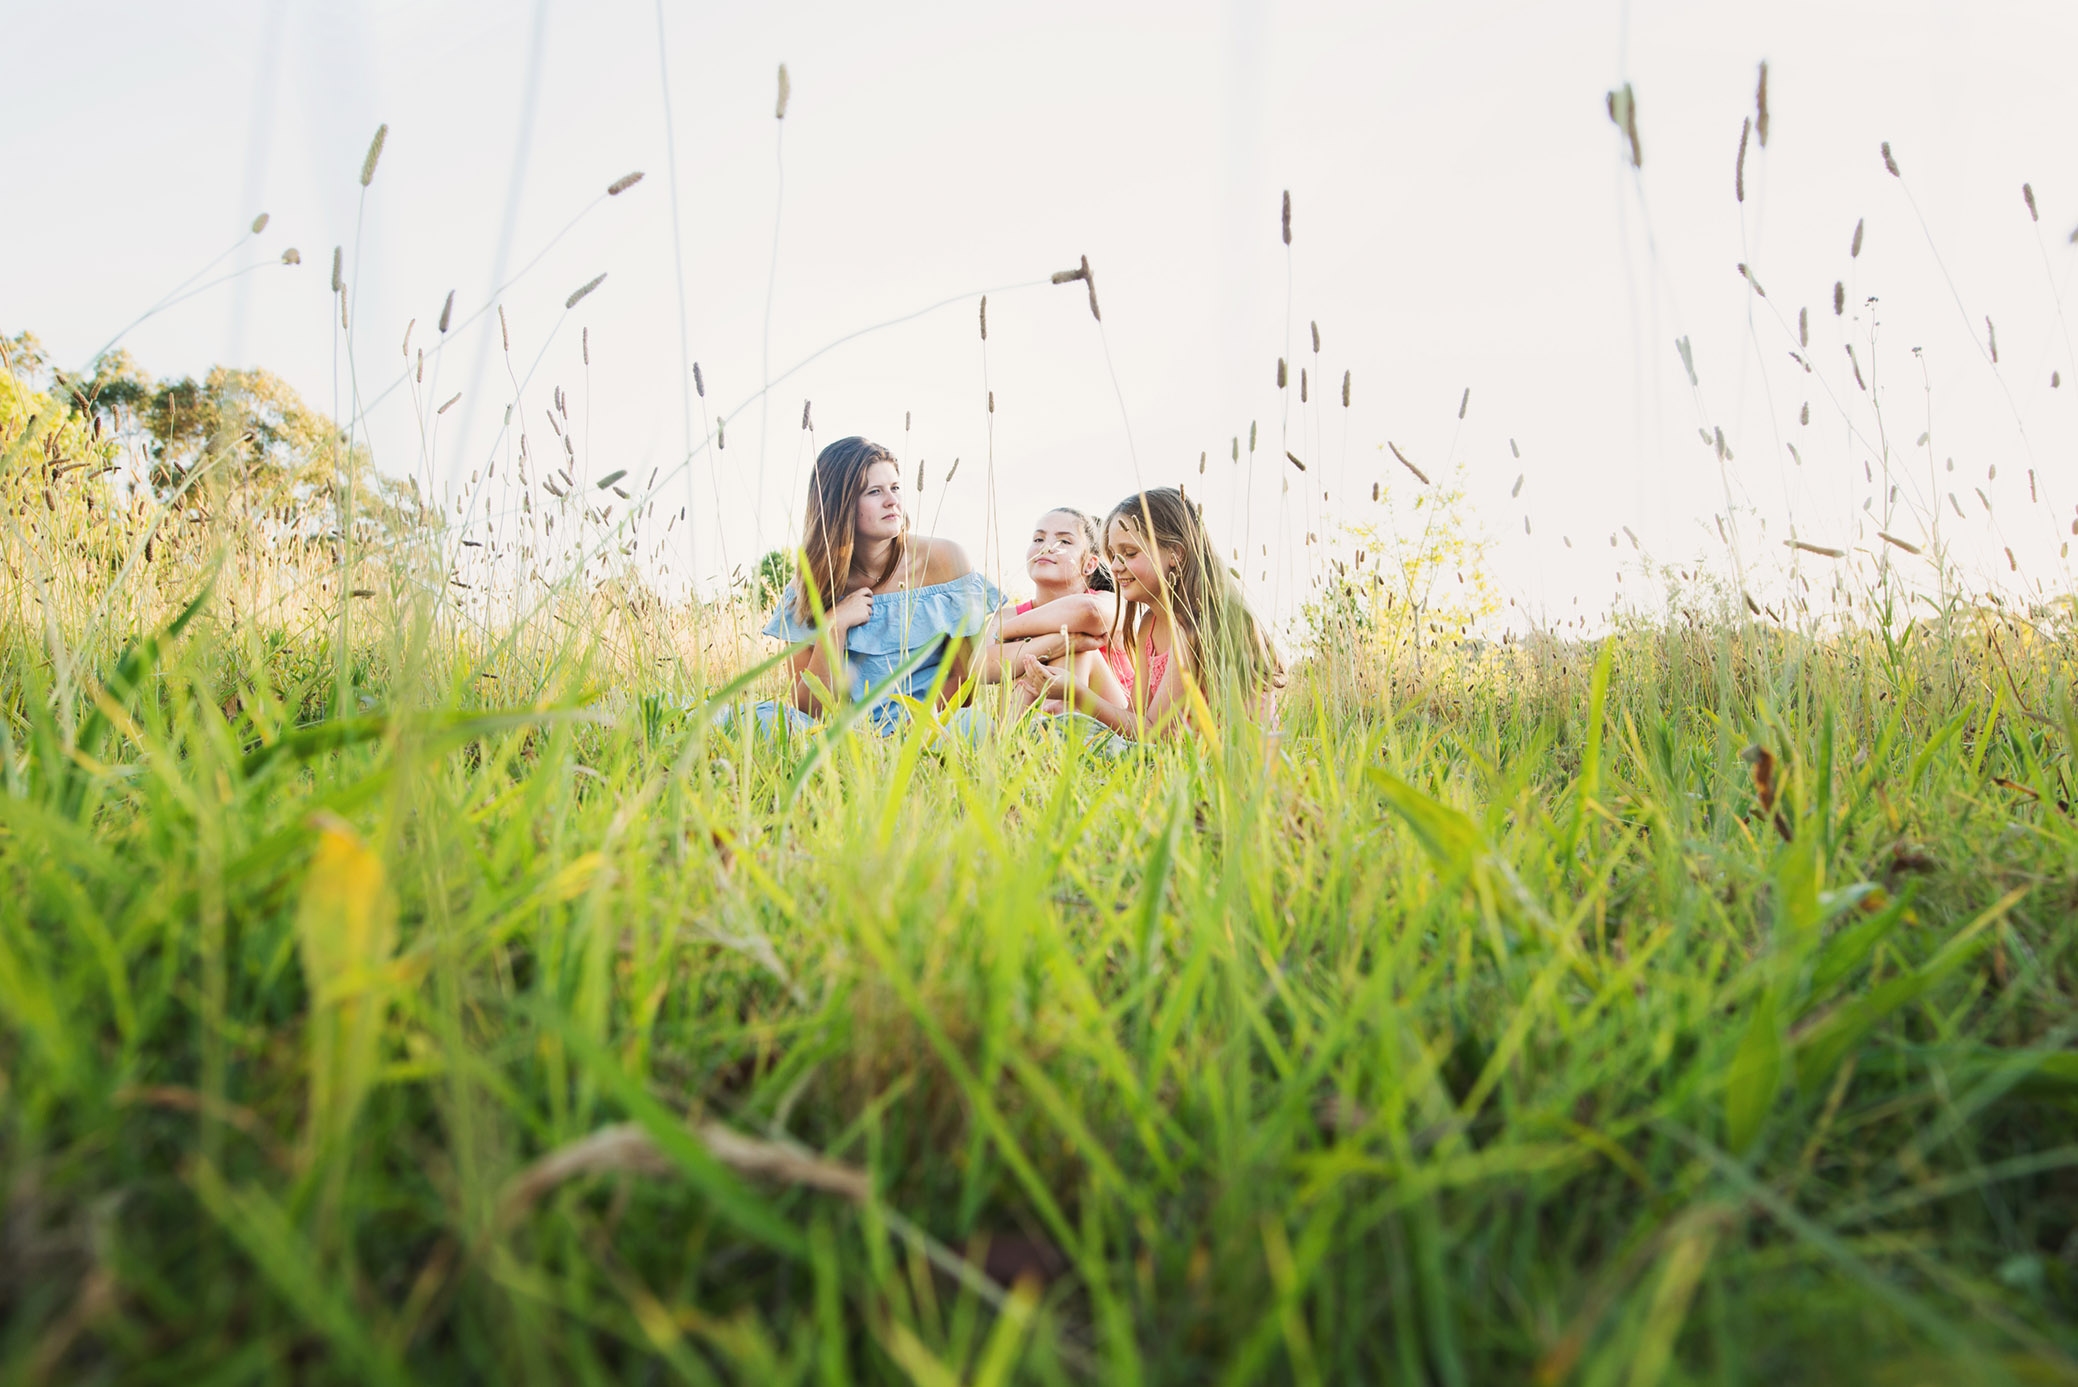 Three girls sitting in a field of long grass by Sydney photographer, Cindy Cavanagh